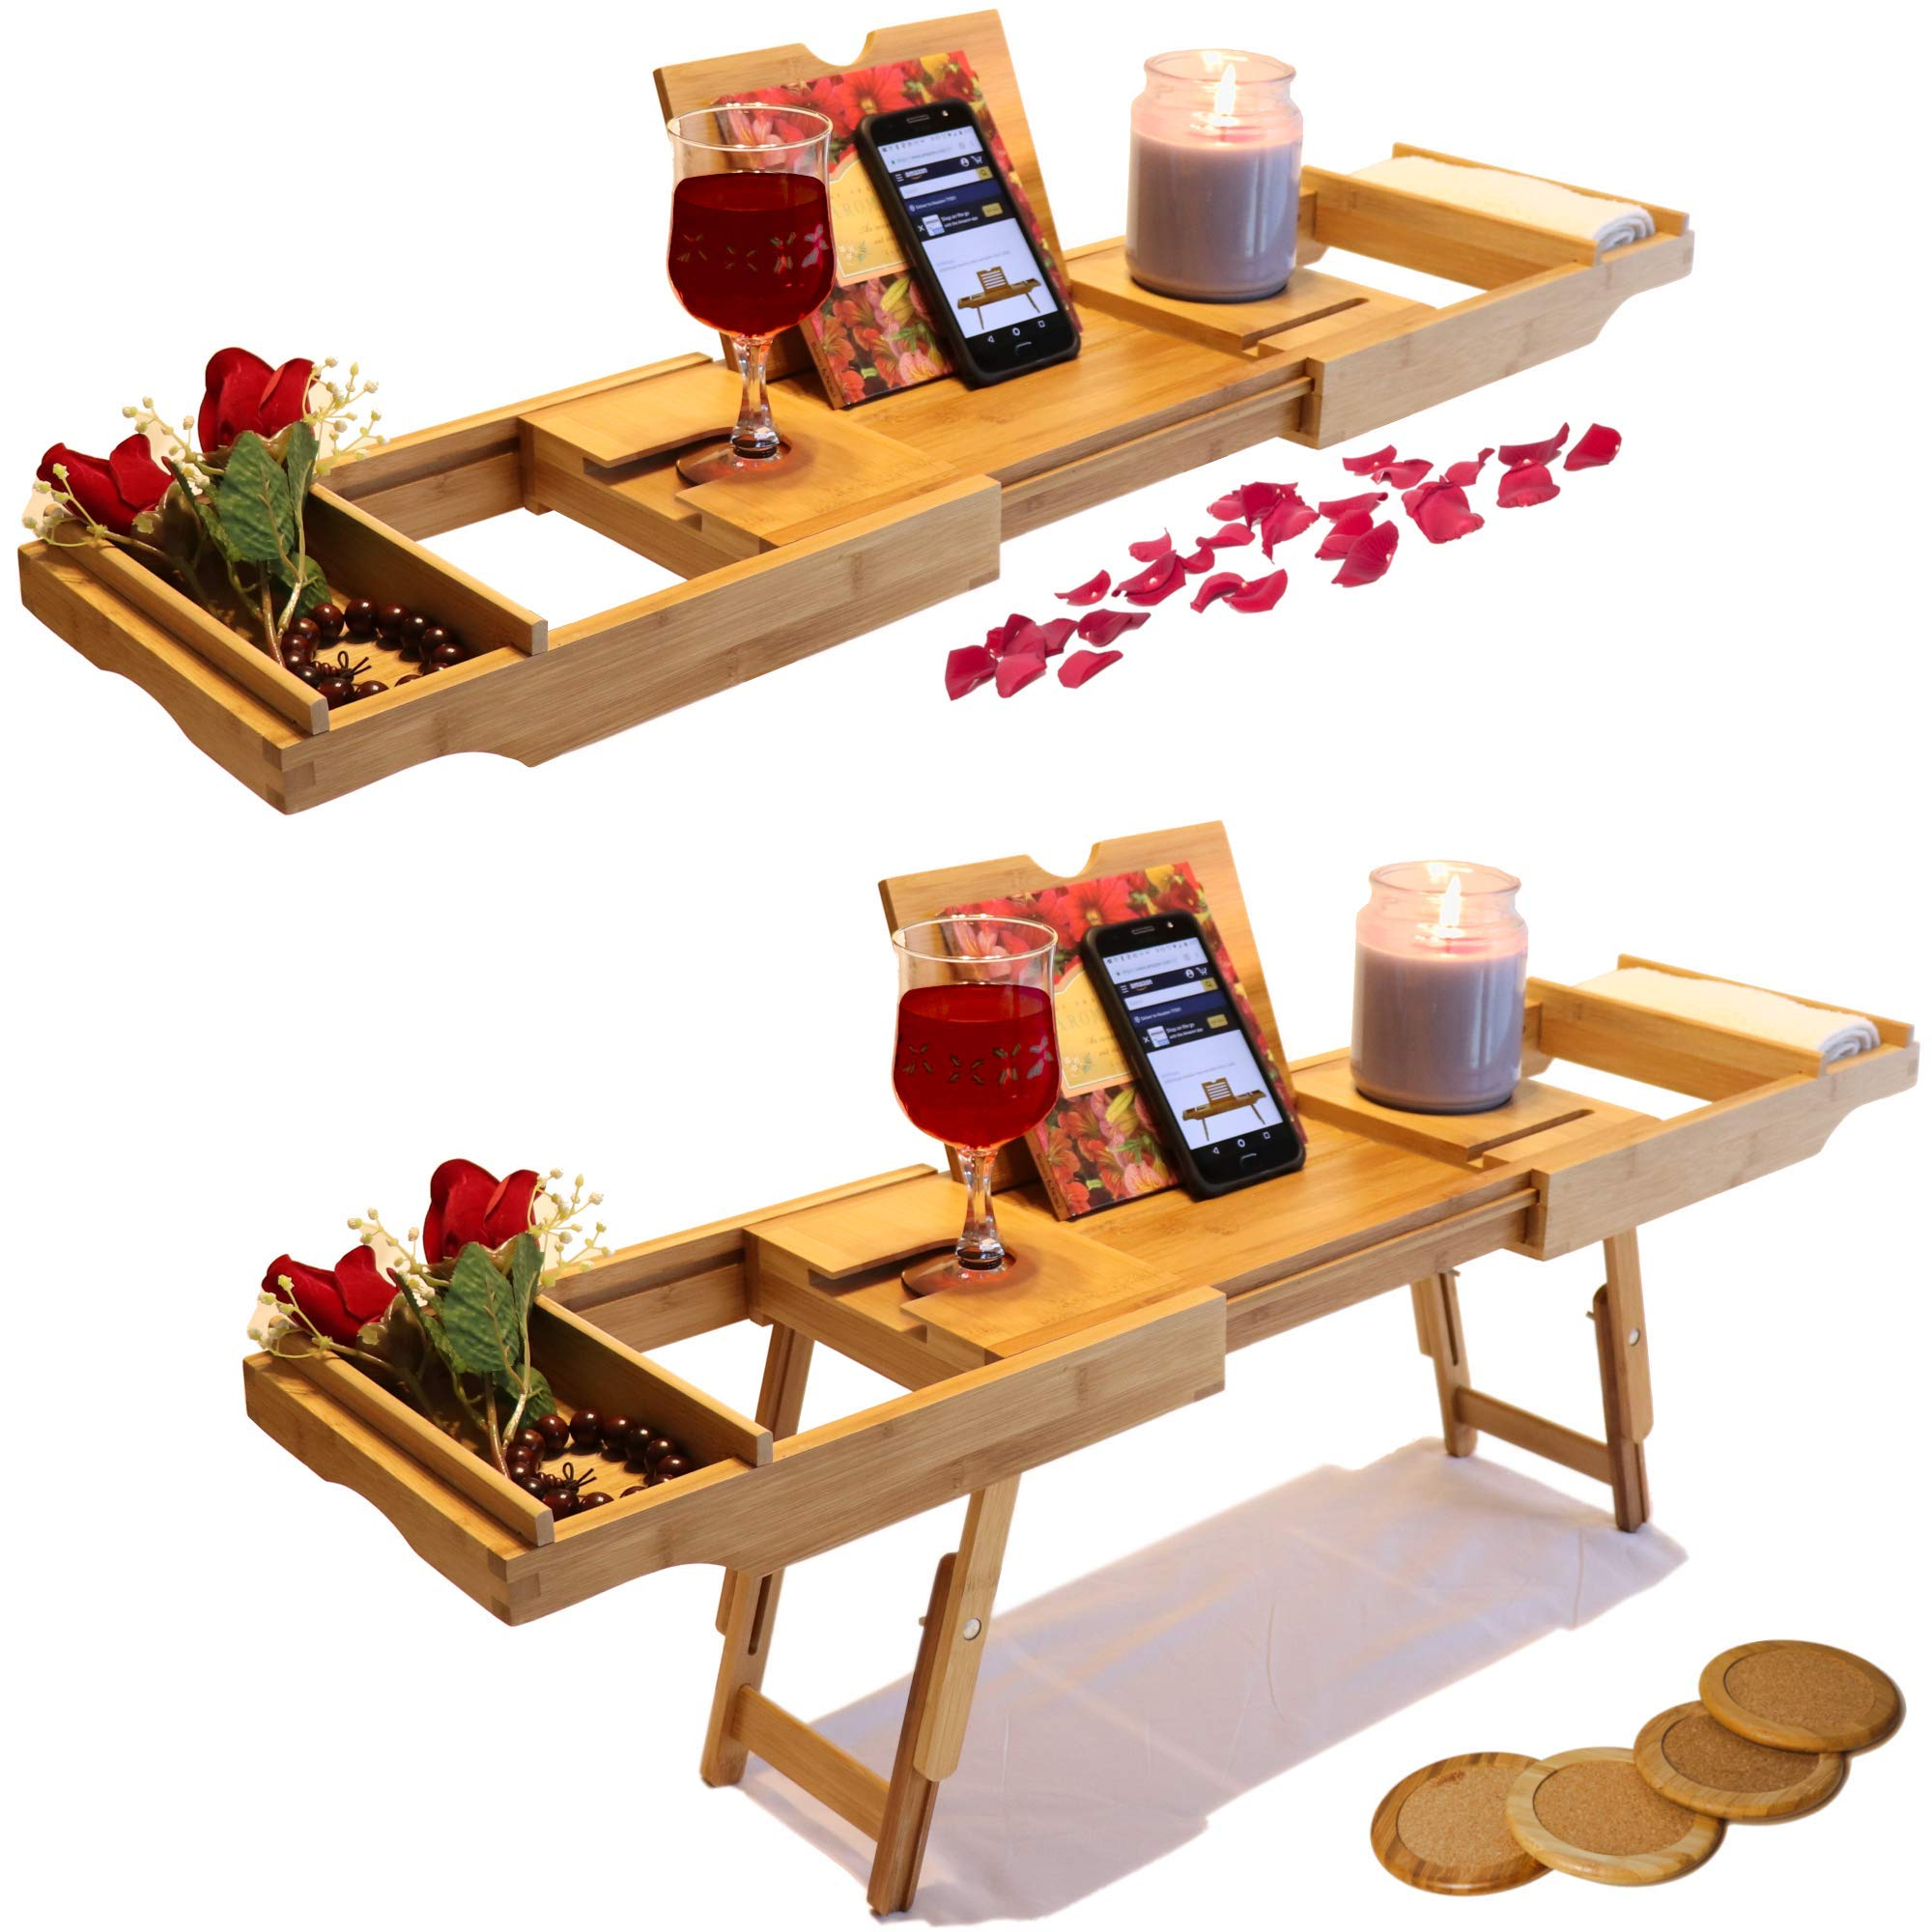 SOHOtopia Bamboo Bed and Bath Caddy with Coasters Bonus Pack | Great Use as a Bed Tray, Bathtub Tray, TV Tray or Portable Desk